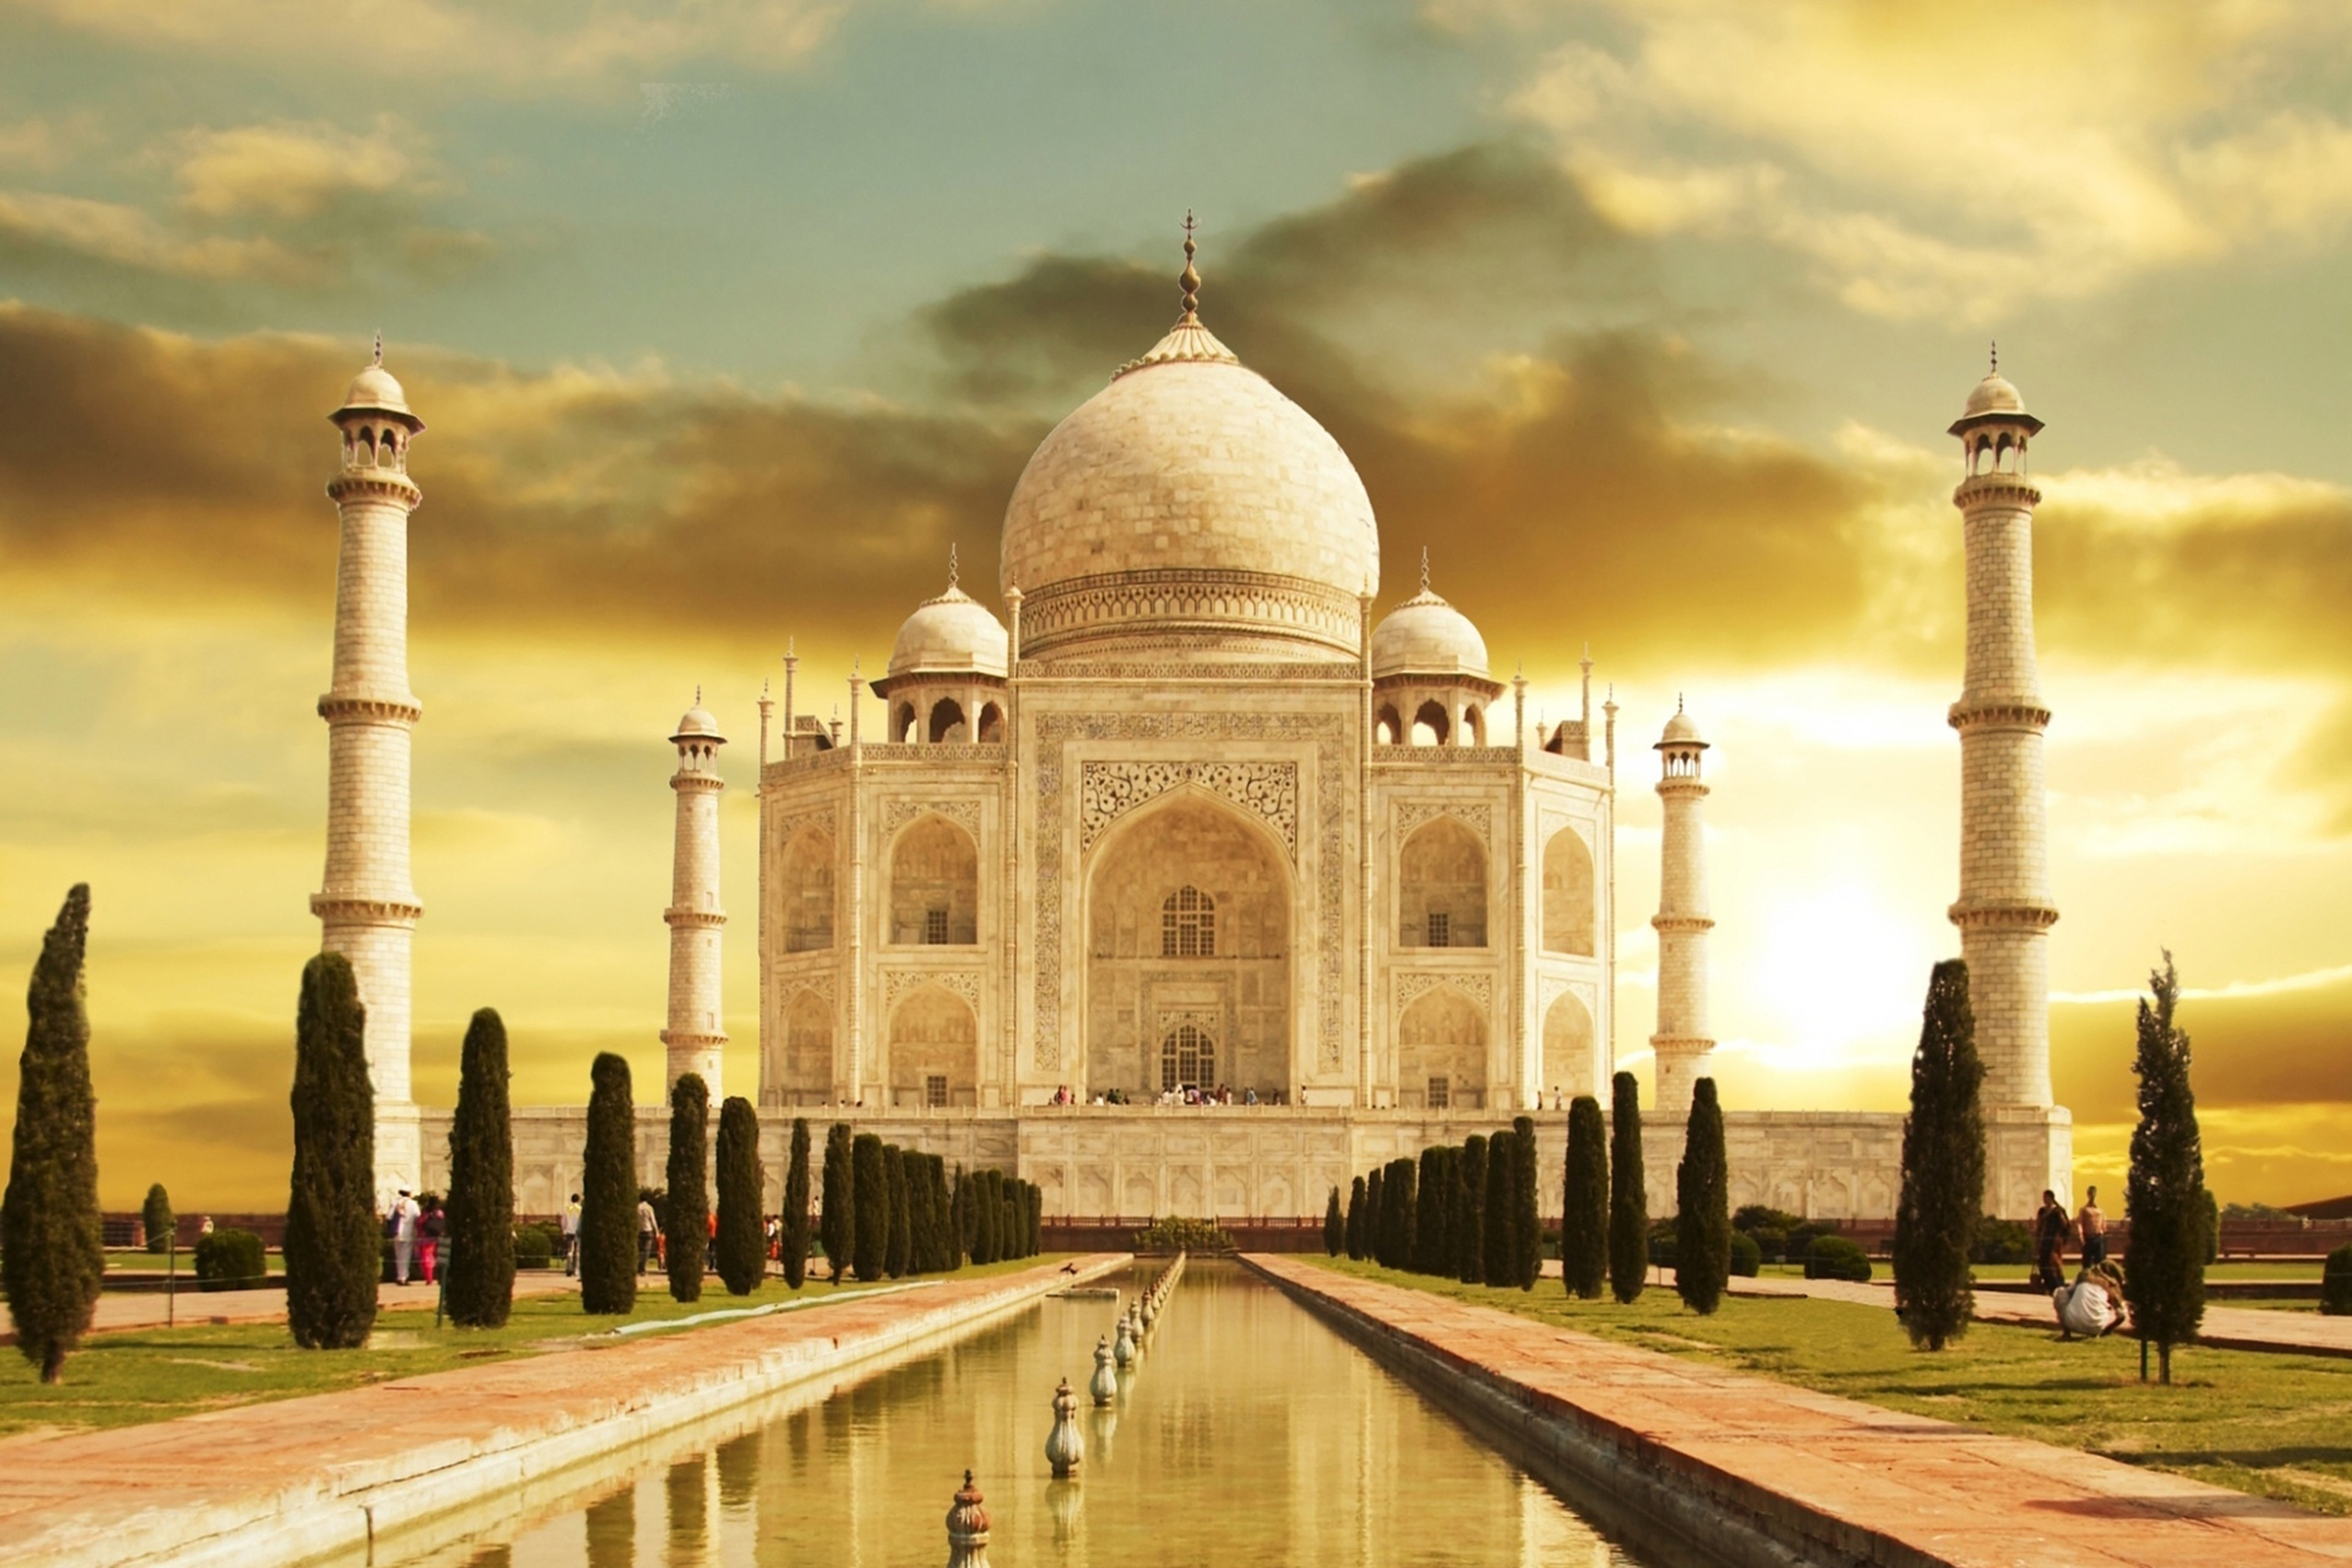 taj mahal india famous building wallpaper KC884 living room home ...